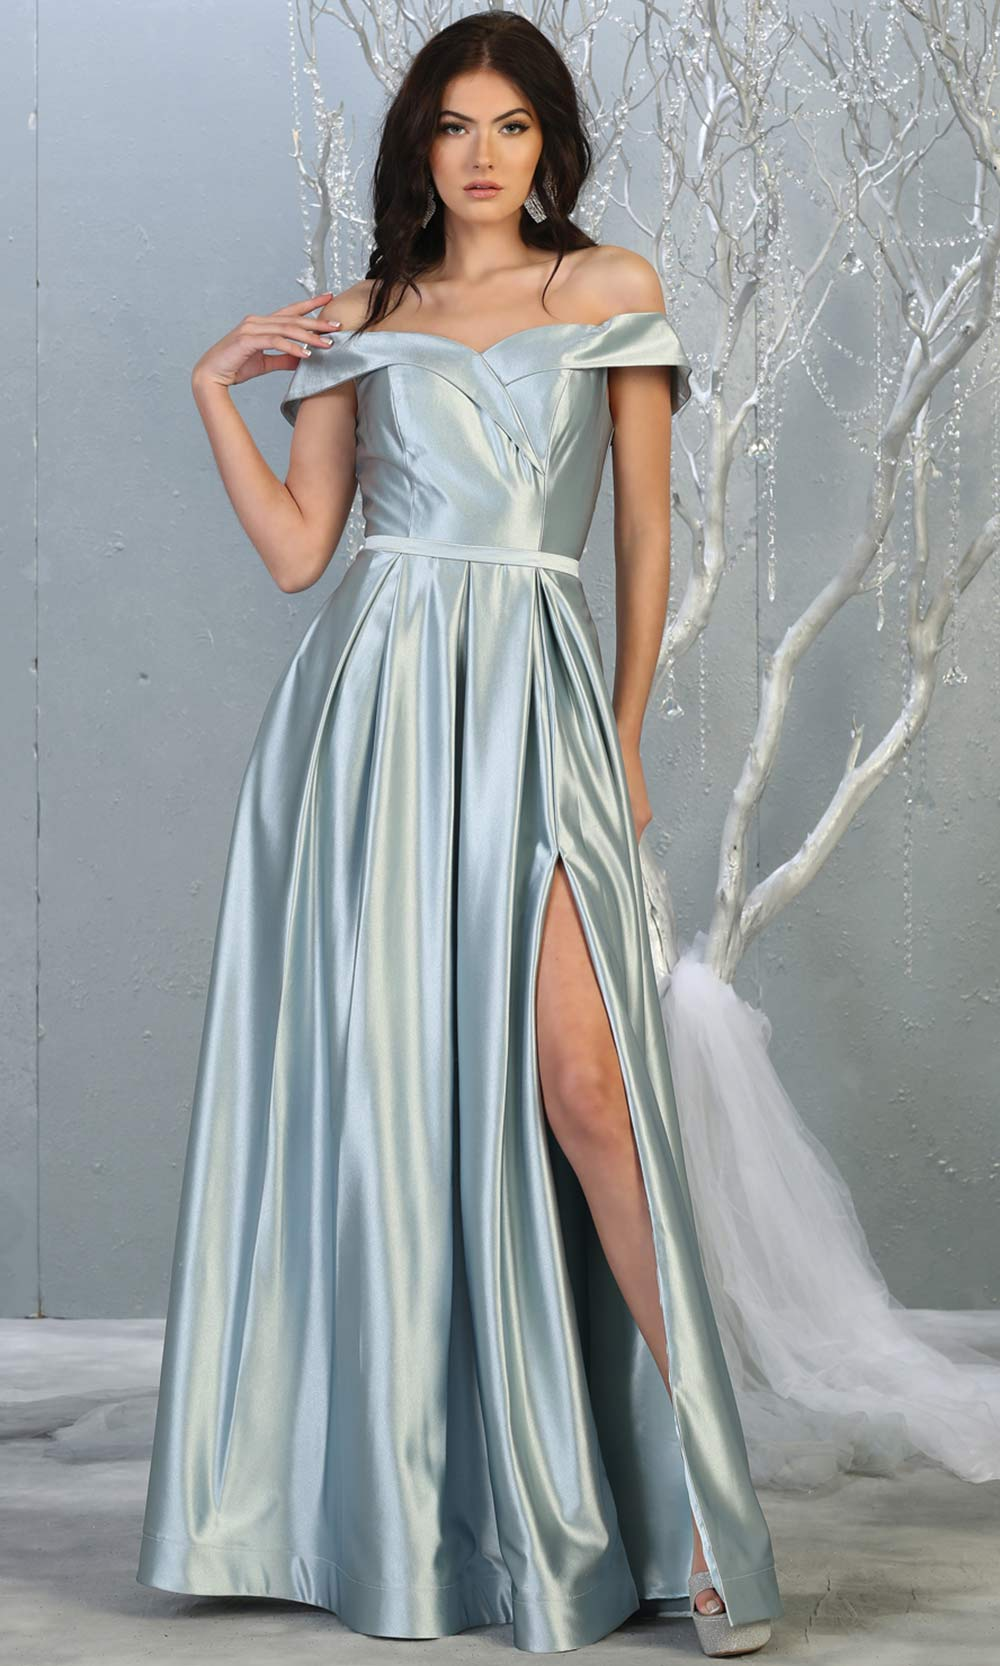 Mayqueen MQ 1781 long dusty blue off shoulder evening flowy dress w/high slit. Full length light blue satin gown is perfect for  enagagement/e-shoot dress, formal wedding guest, indowestern gown, evening party dress, prom, bridesmaid. Plus sizes avail.jpg